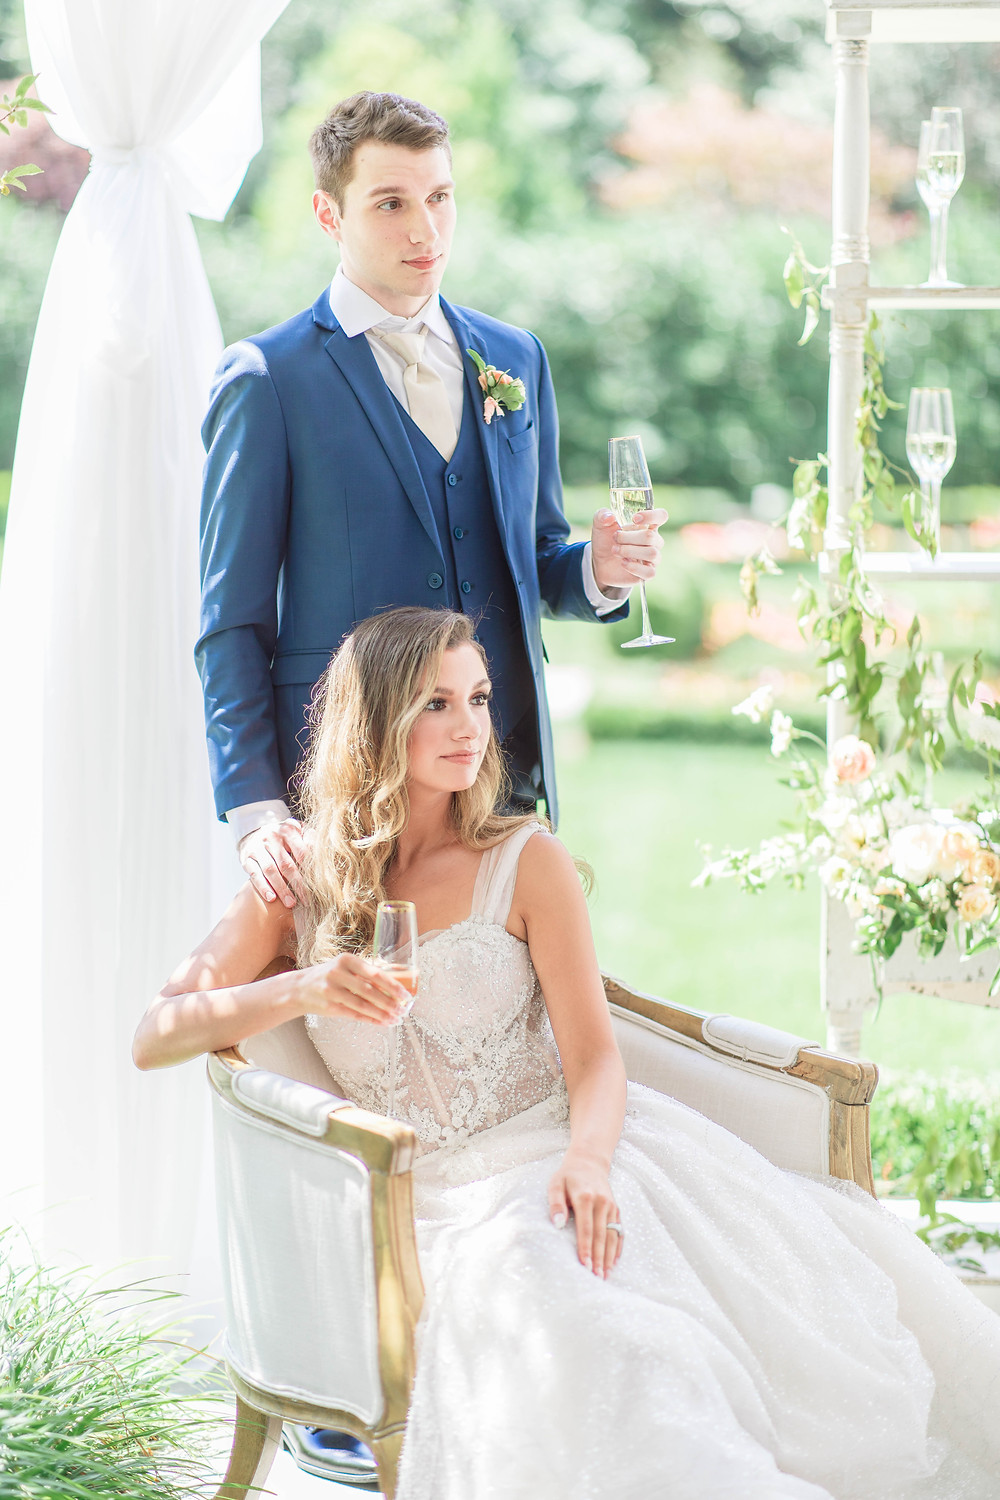 Spring Garden Wedding Inspiration by Katie Trauffer Photography